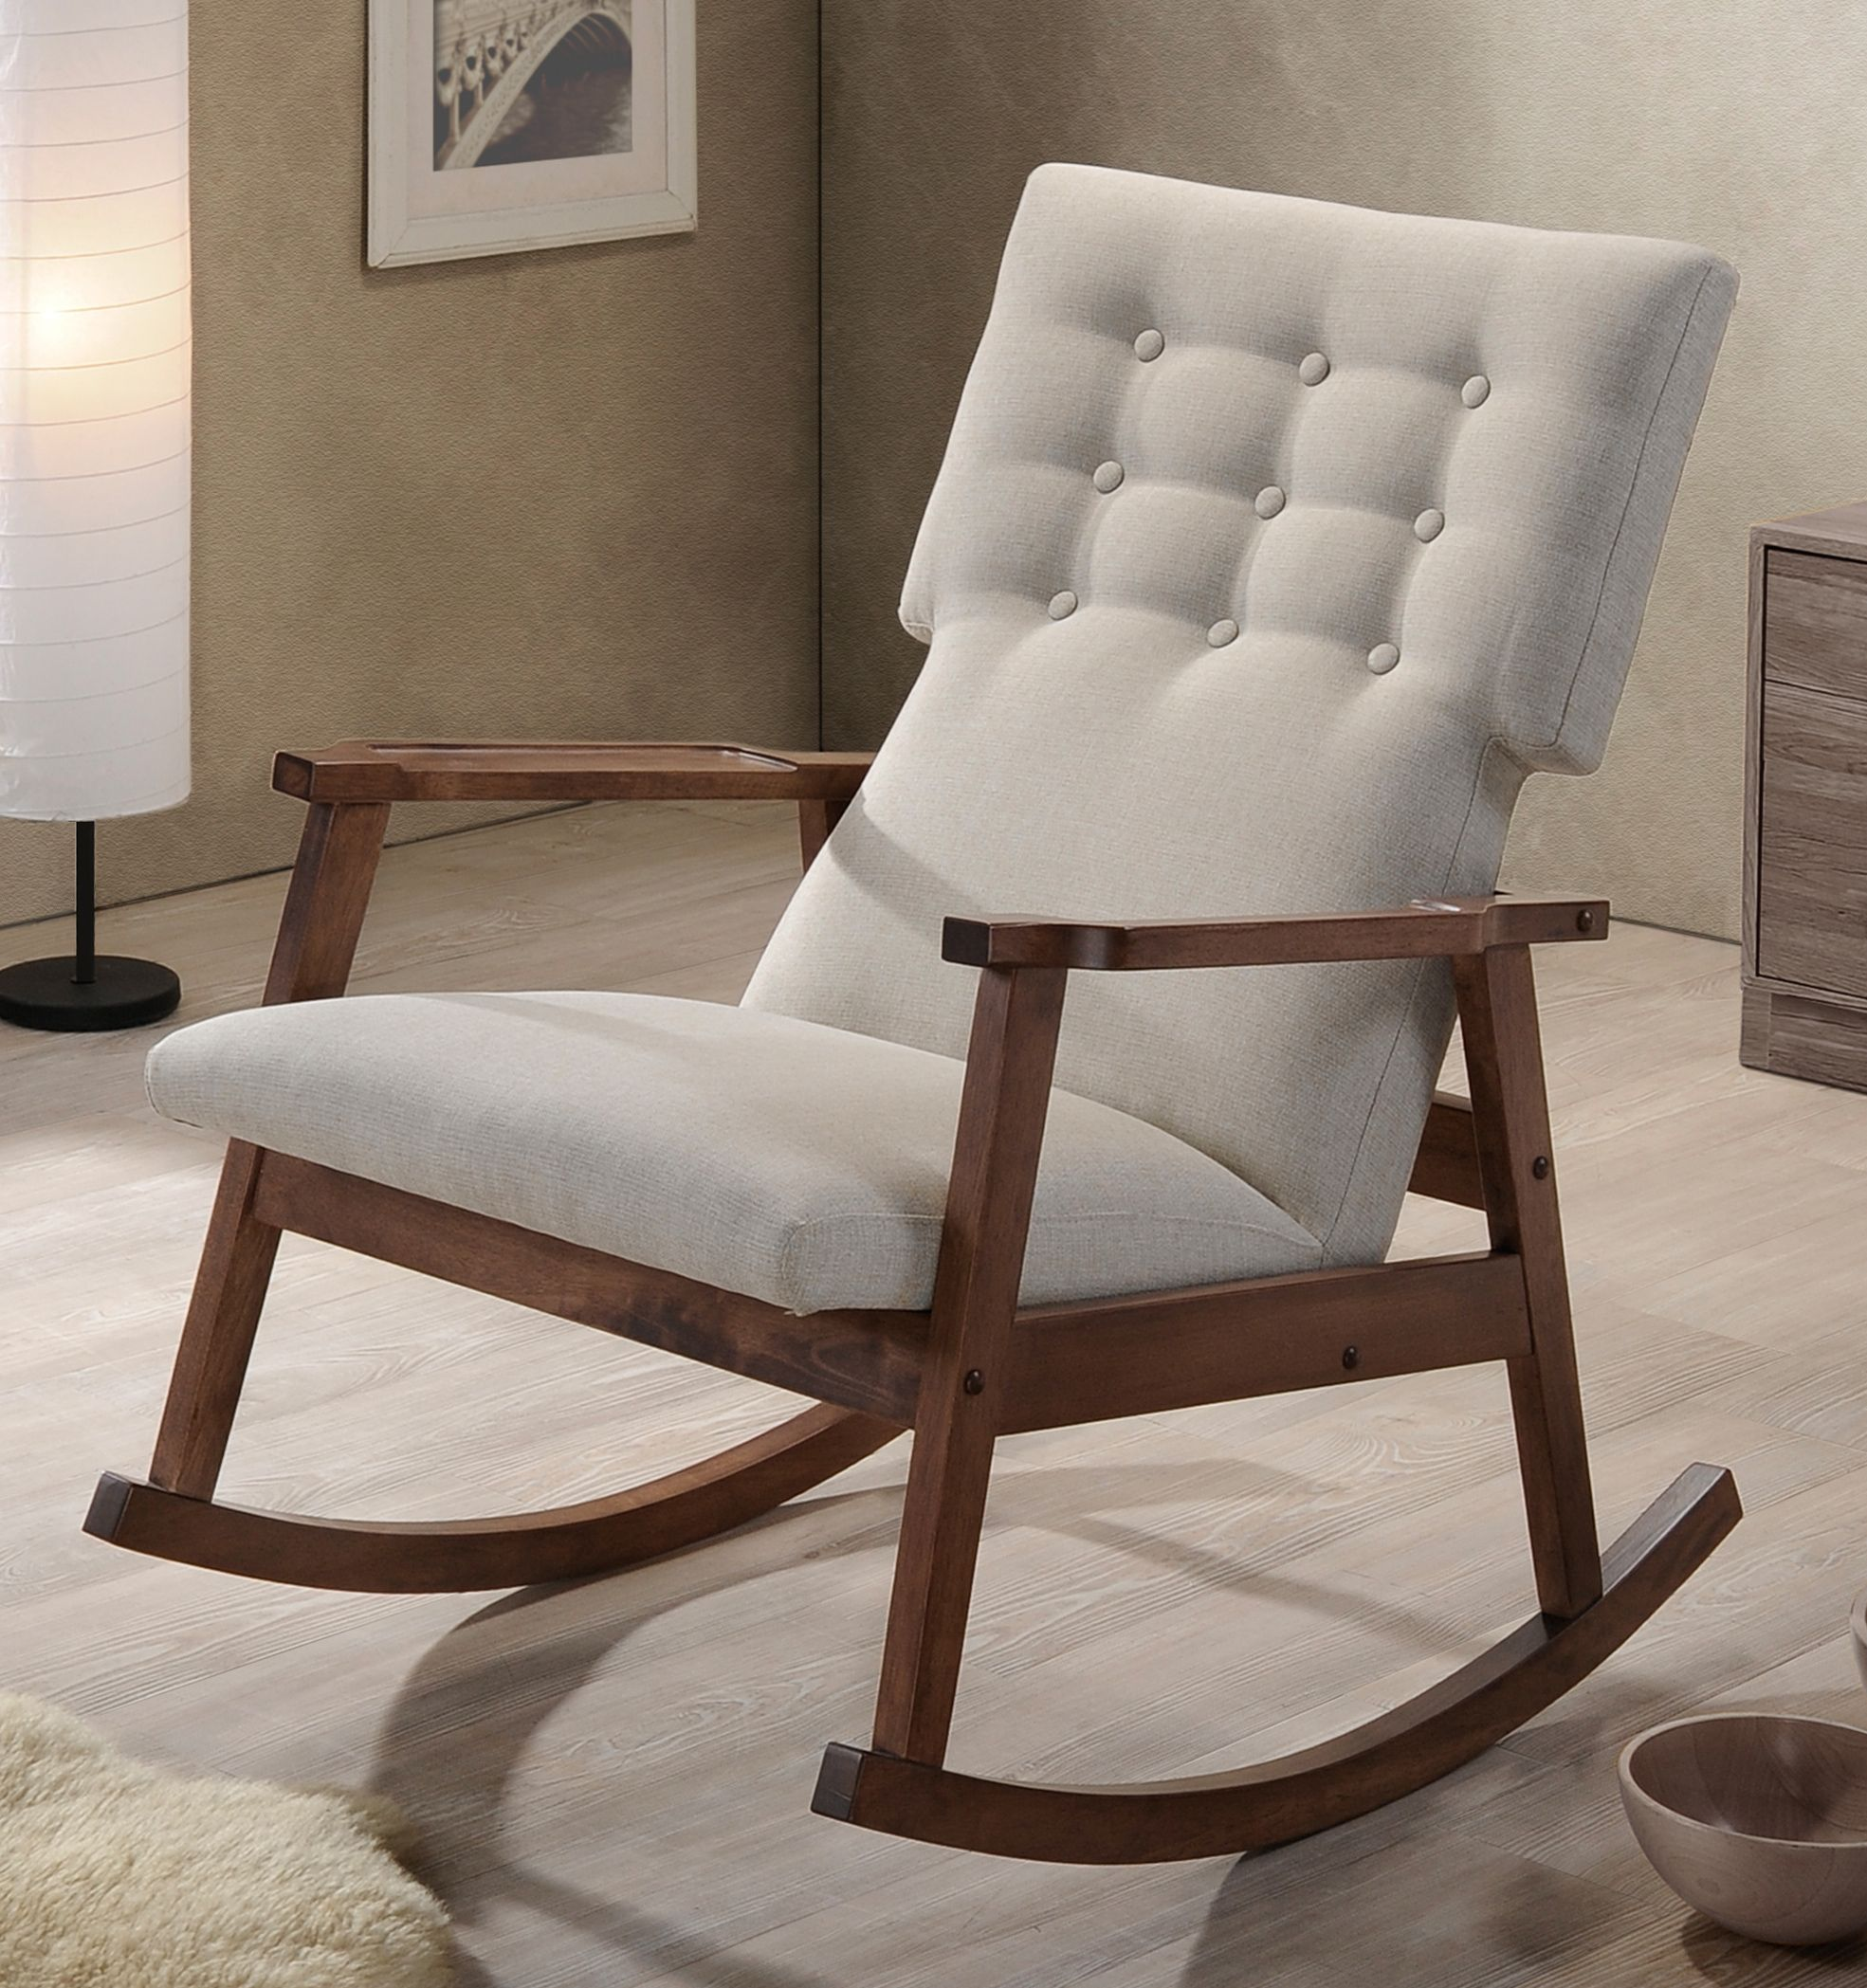 White Upholstered Rocking Chair Diy Dining Room Covers Midcentury Modern Fabric Button Tufted